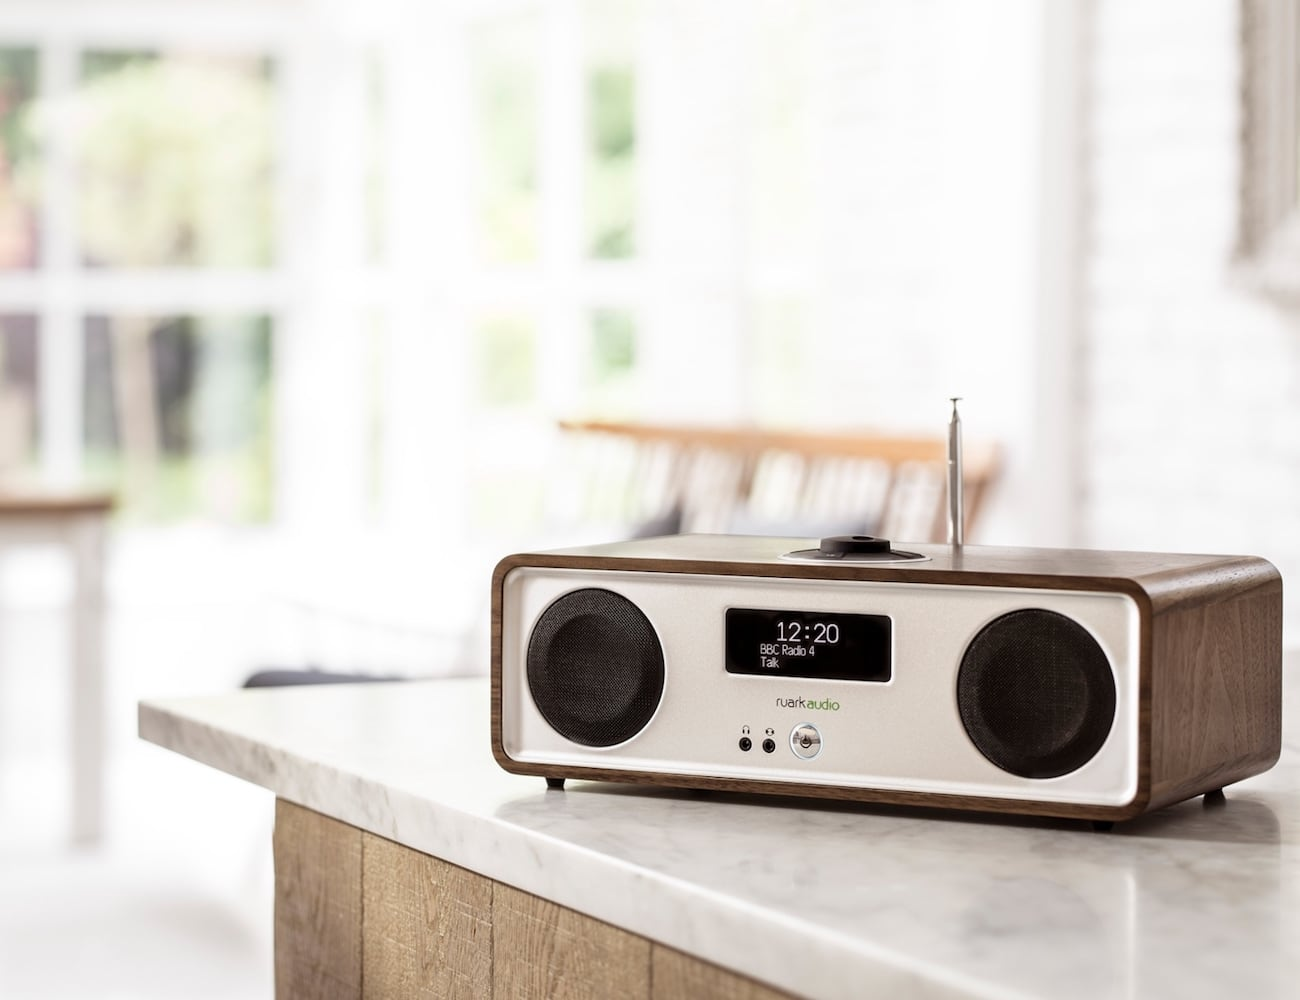 Ruark Audio R2 Mk3 streaming music system plays your favorite music from multiple sources